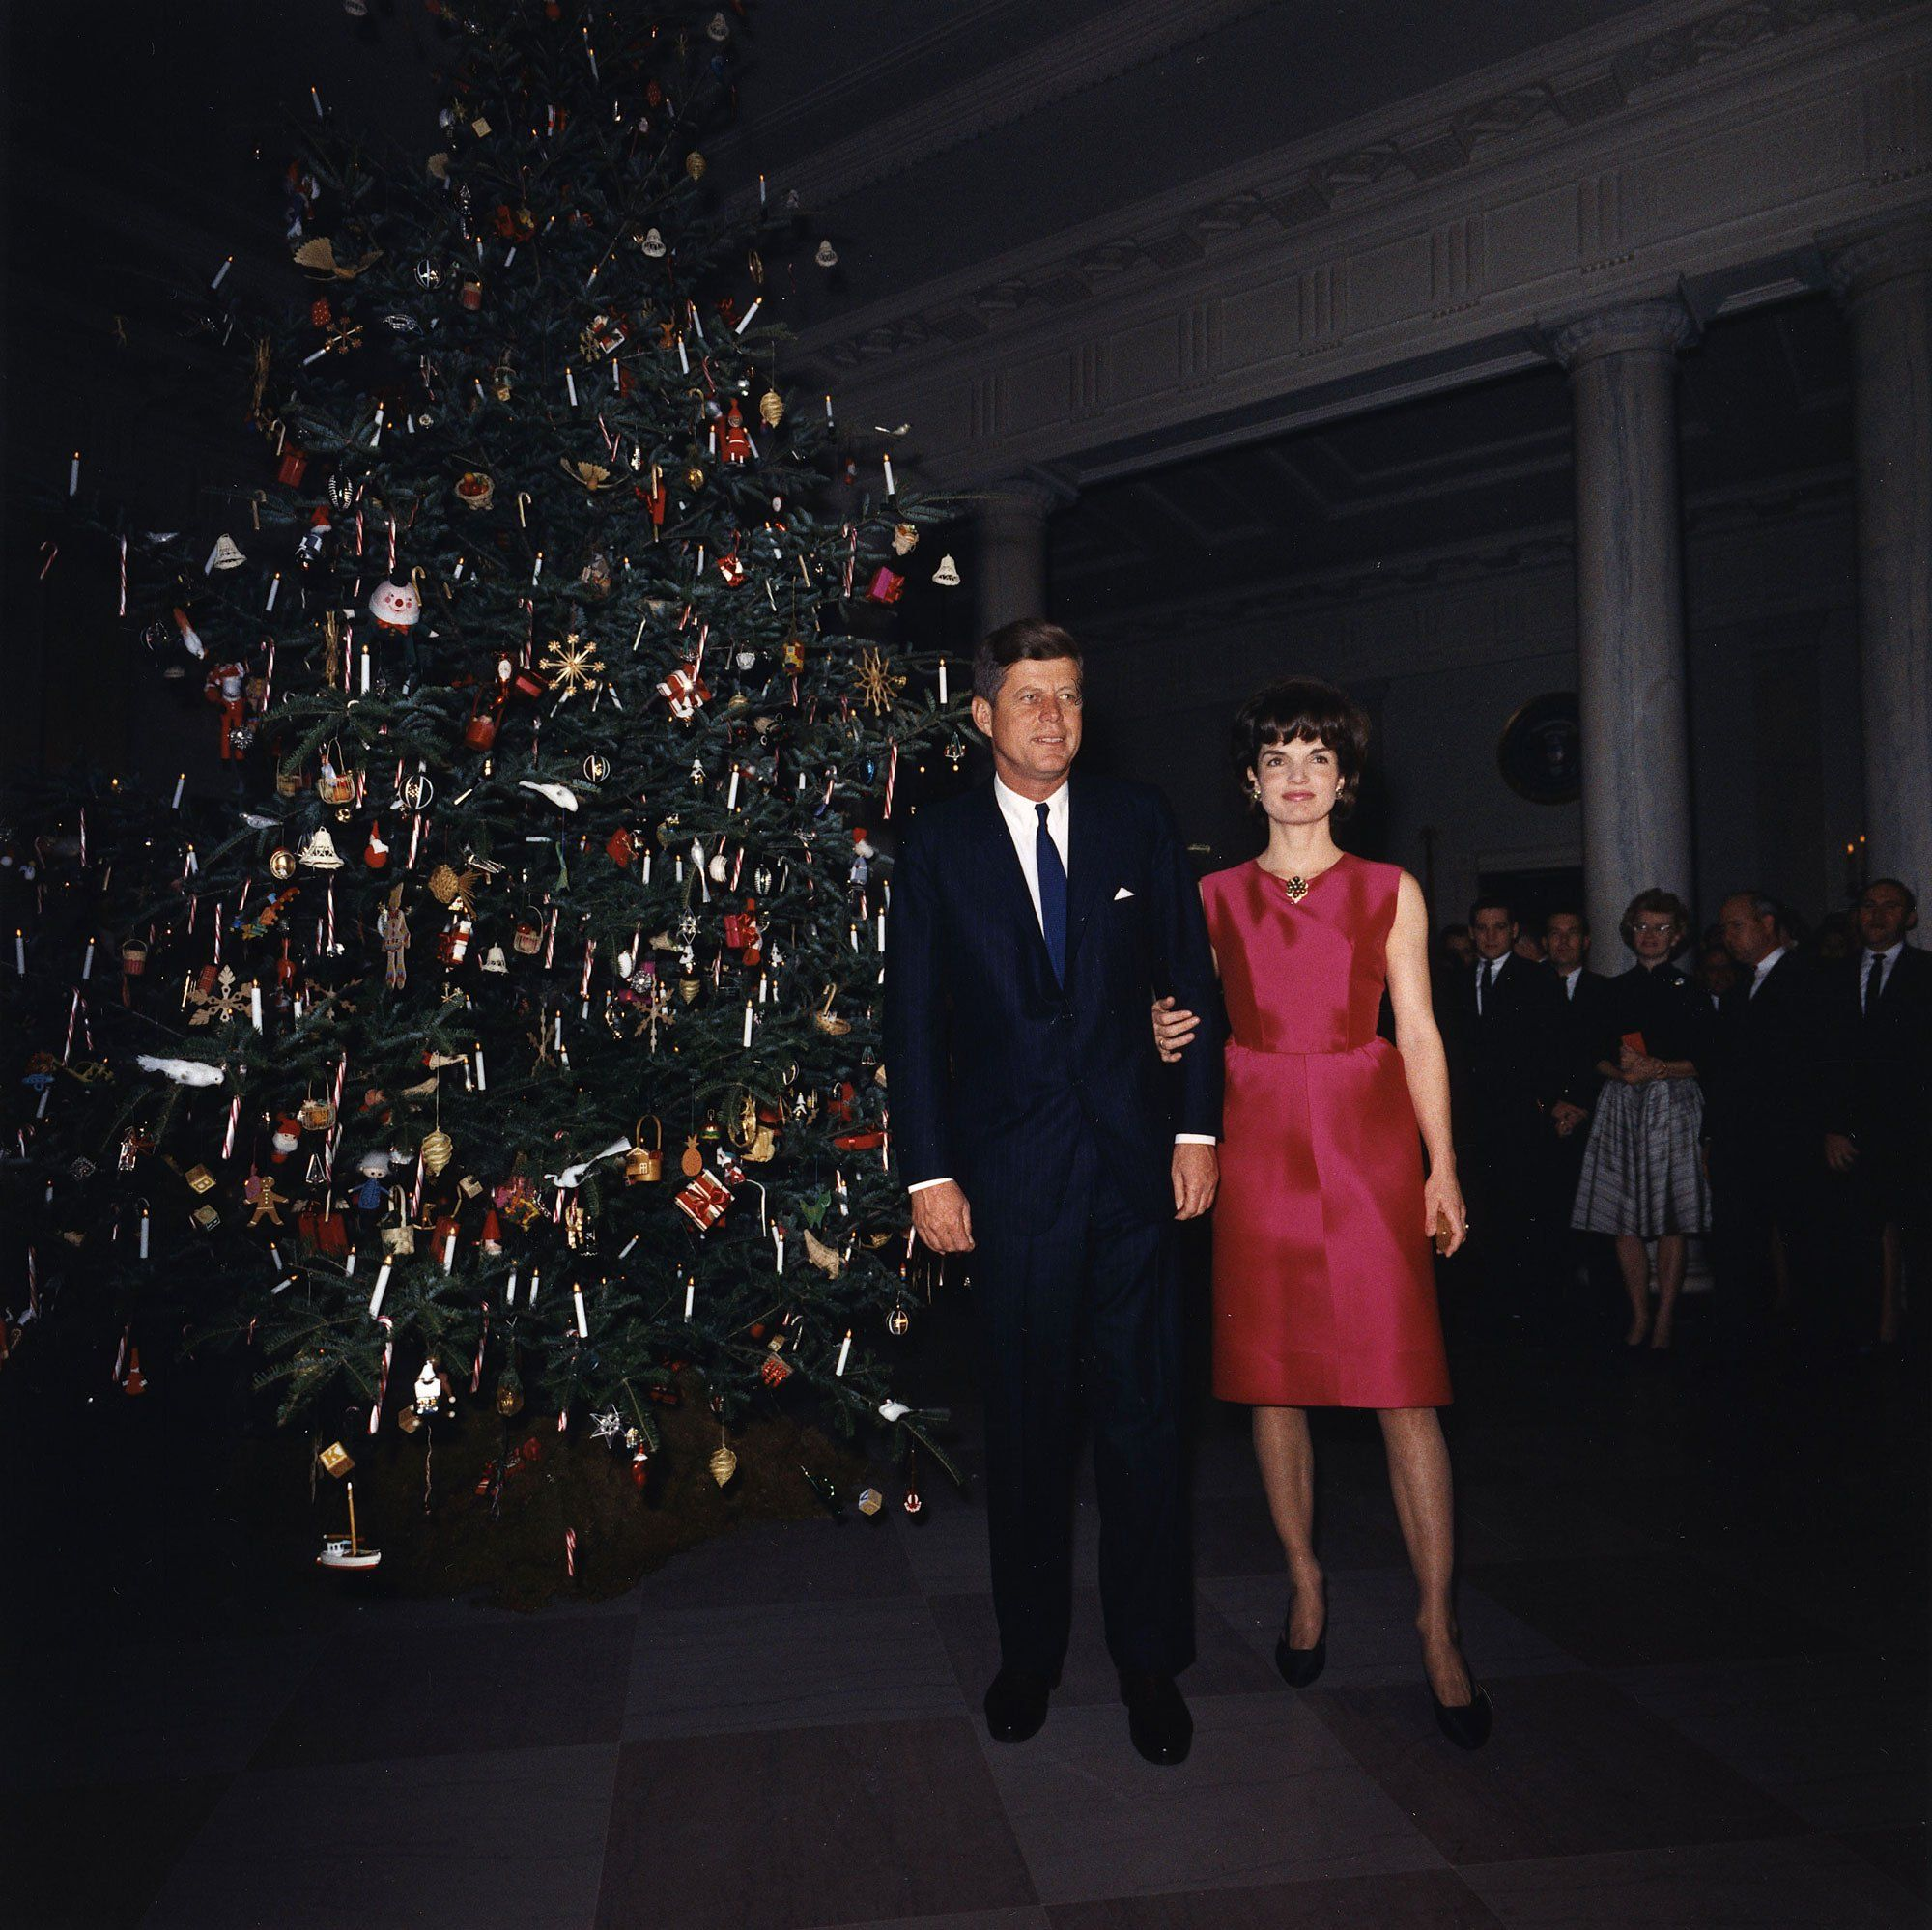 President John F. Kennedy and First Lady Jacqueline Kennedy, 1962